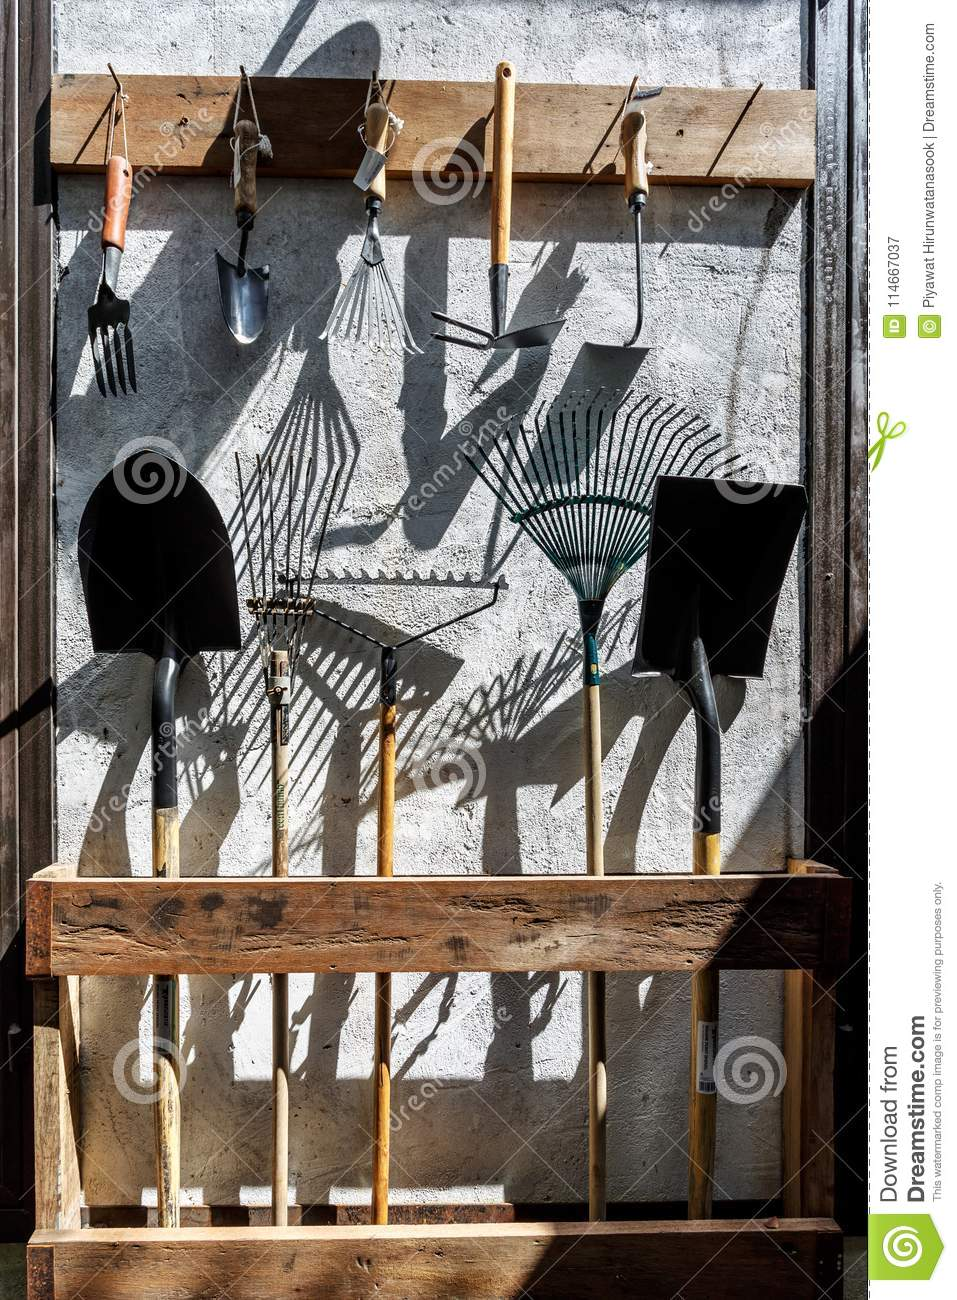 Farm Tools Stock Images - Download 10,609 Royalty Free Photos